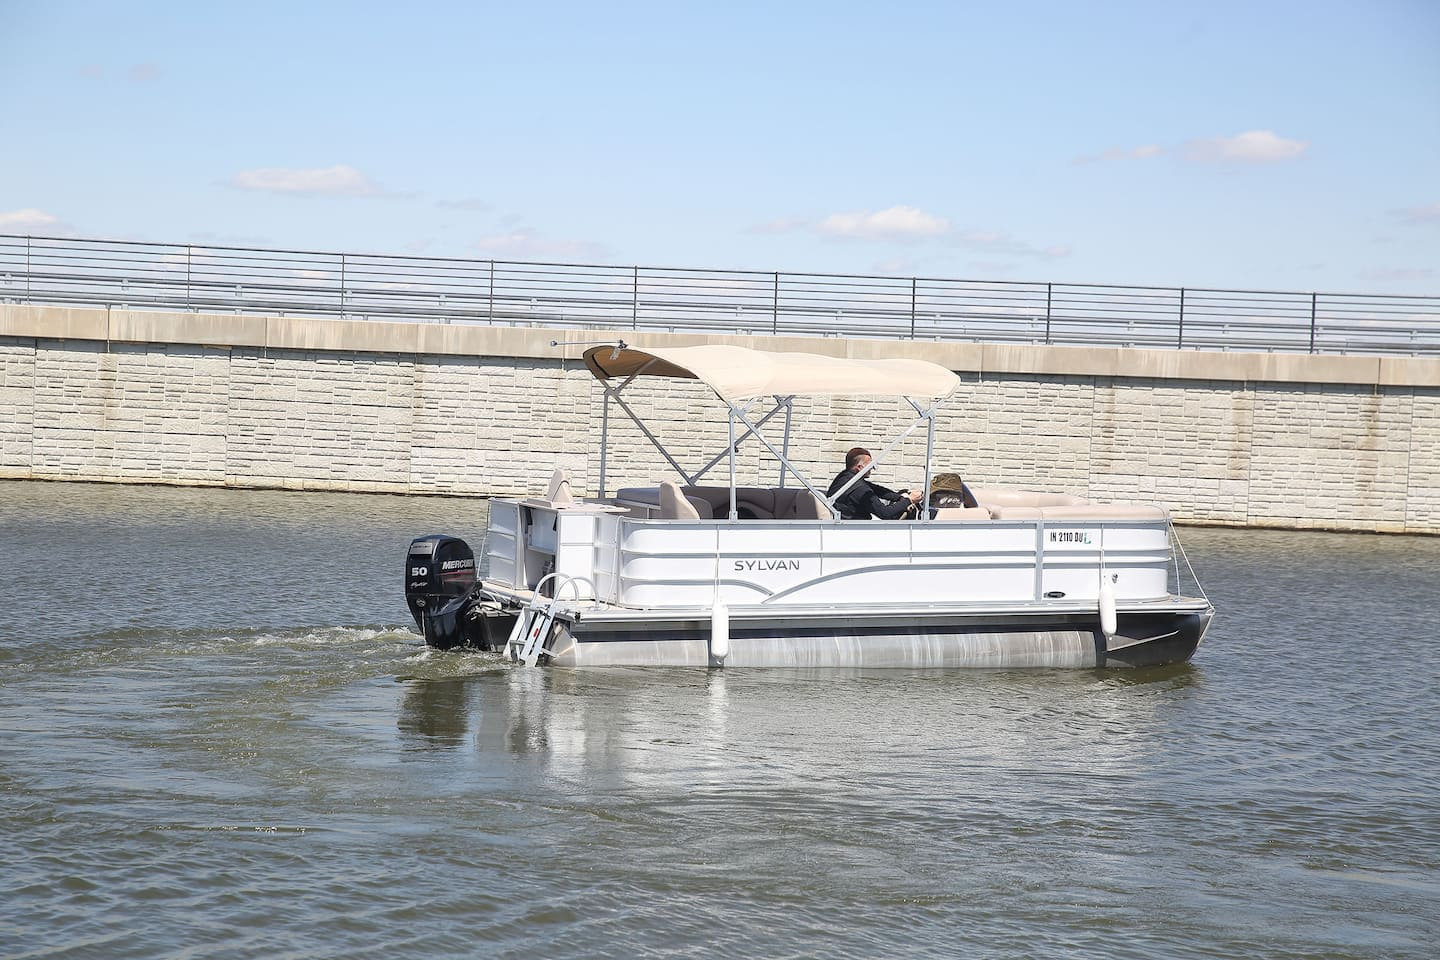 Boat Rental Options Abound in Indianapolis | Angie's List